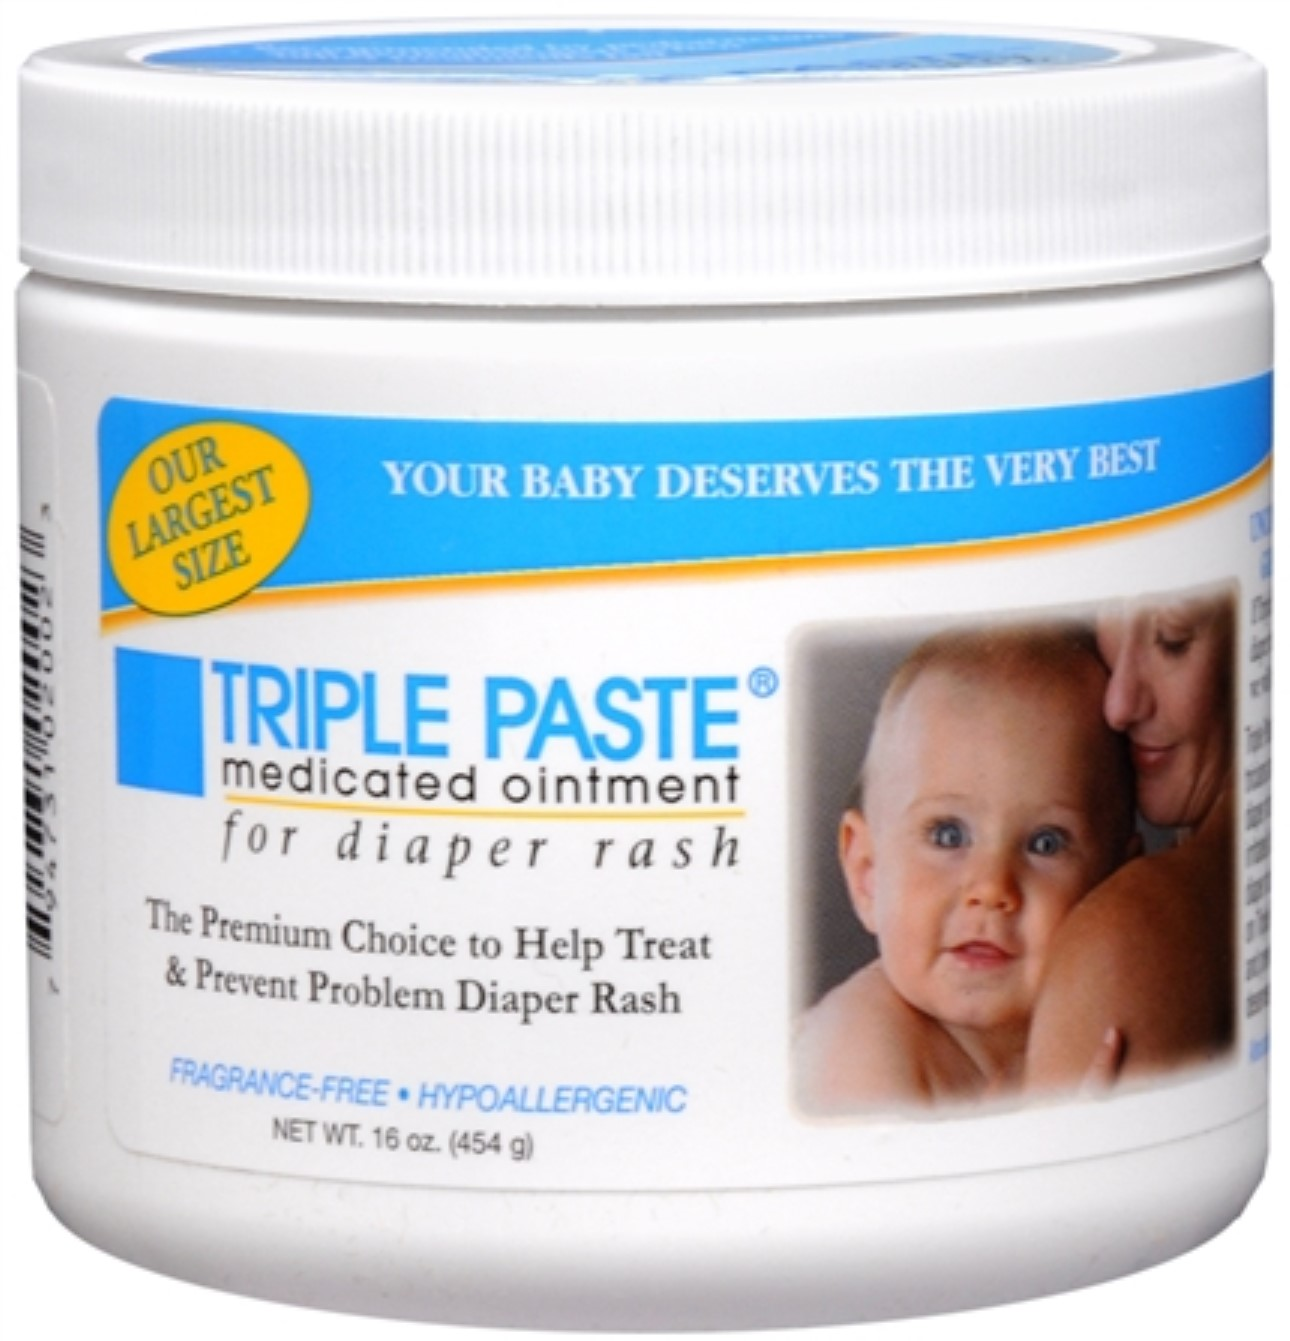 Triple Paste Medicated Ointment 16 oz [1 LB] (Pack of 2)